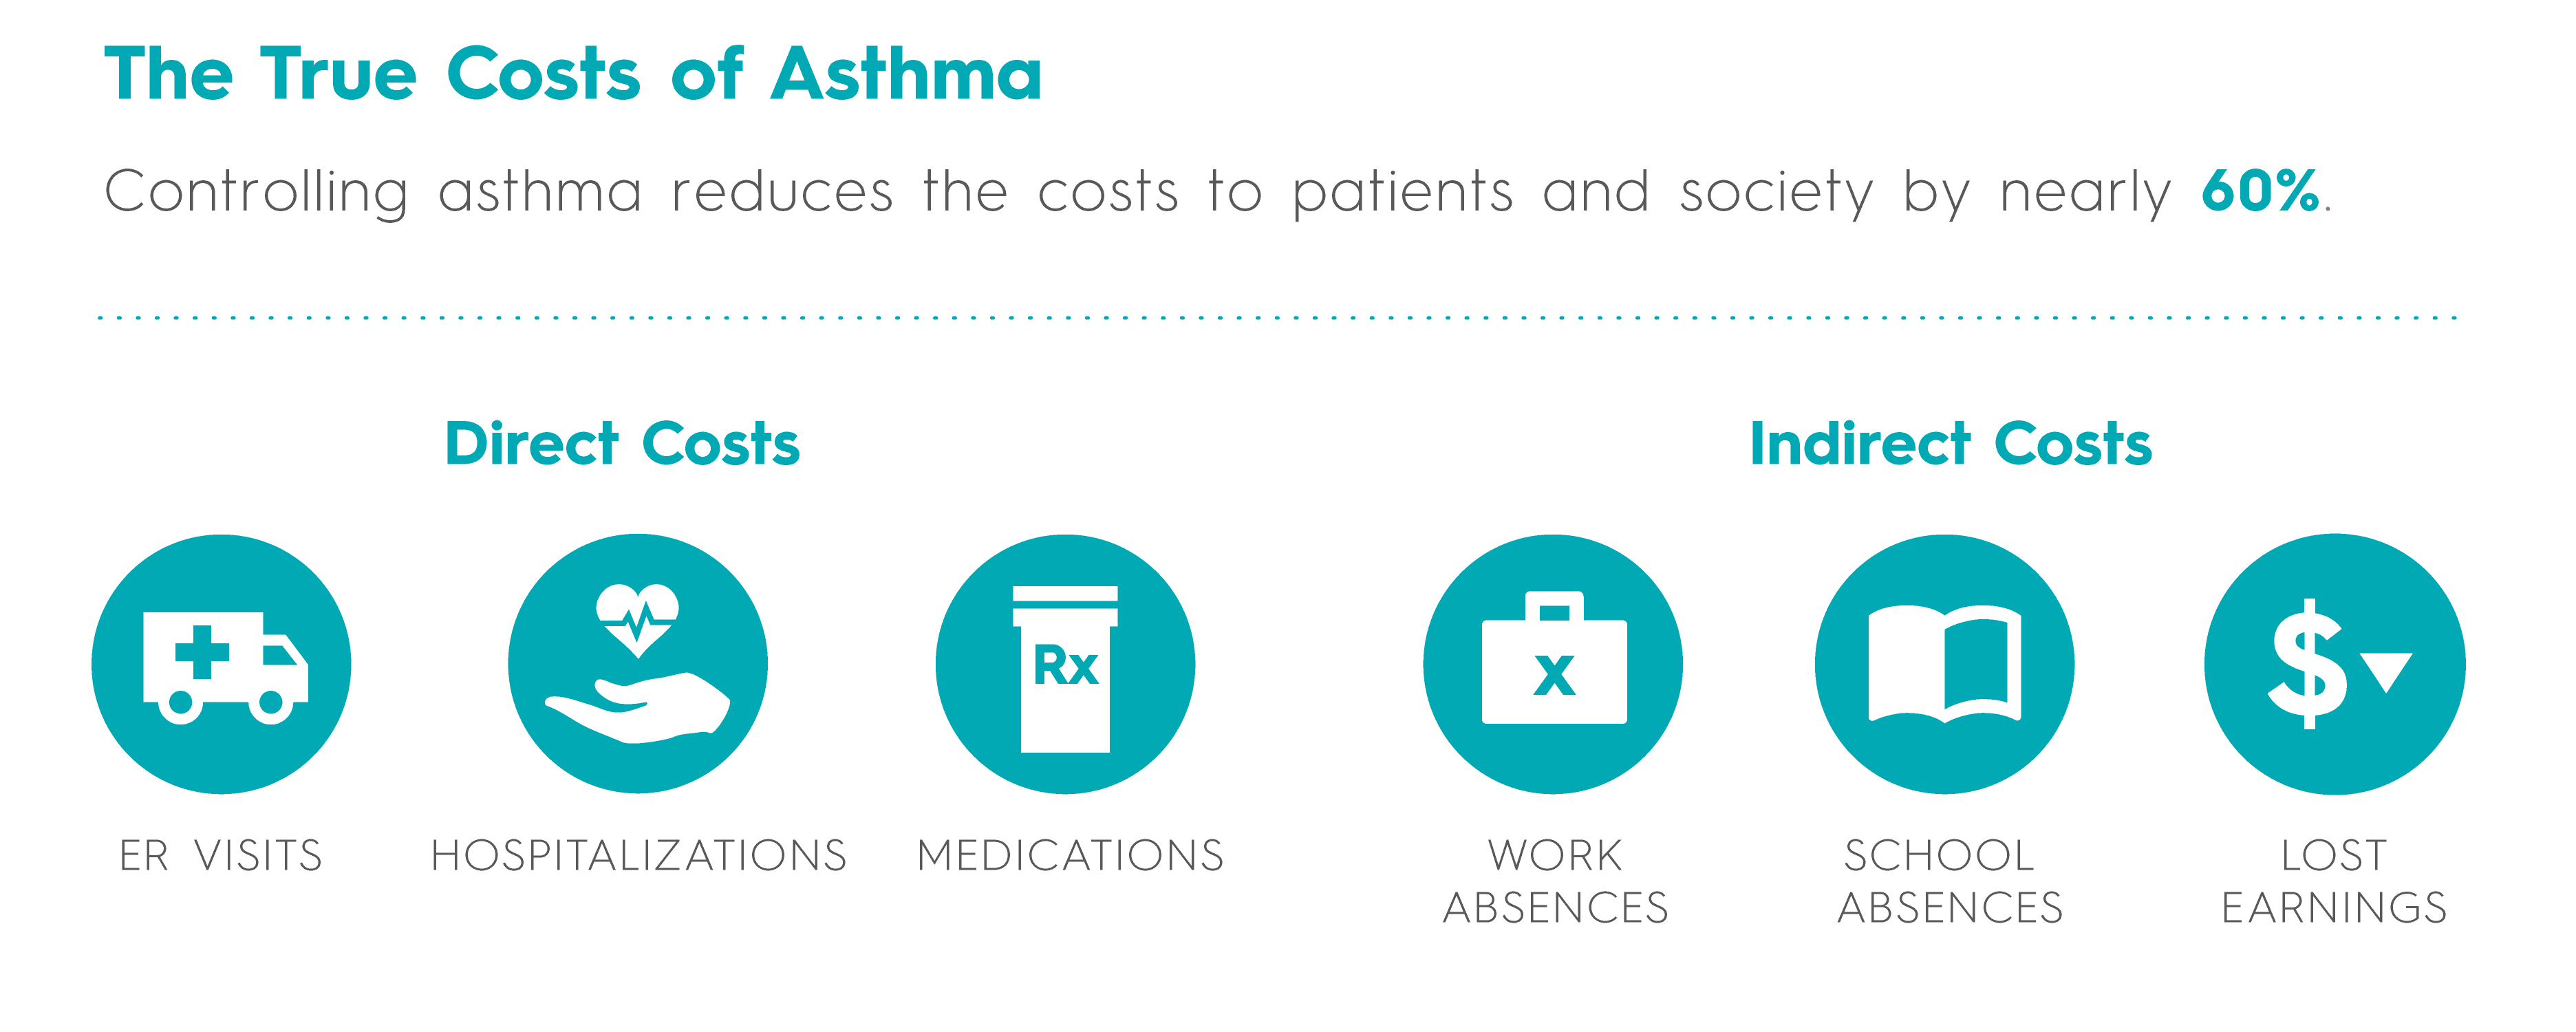 The True Costs of Asthma